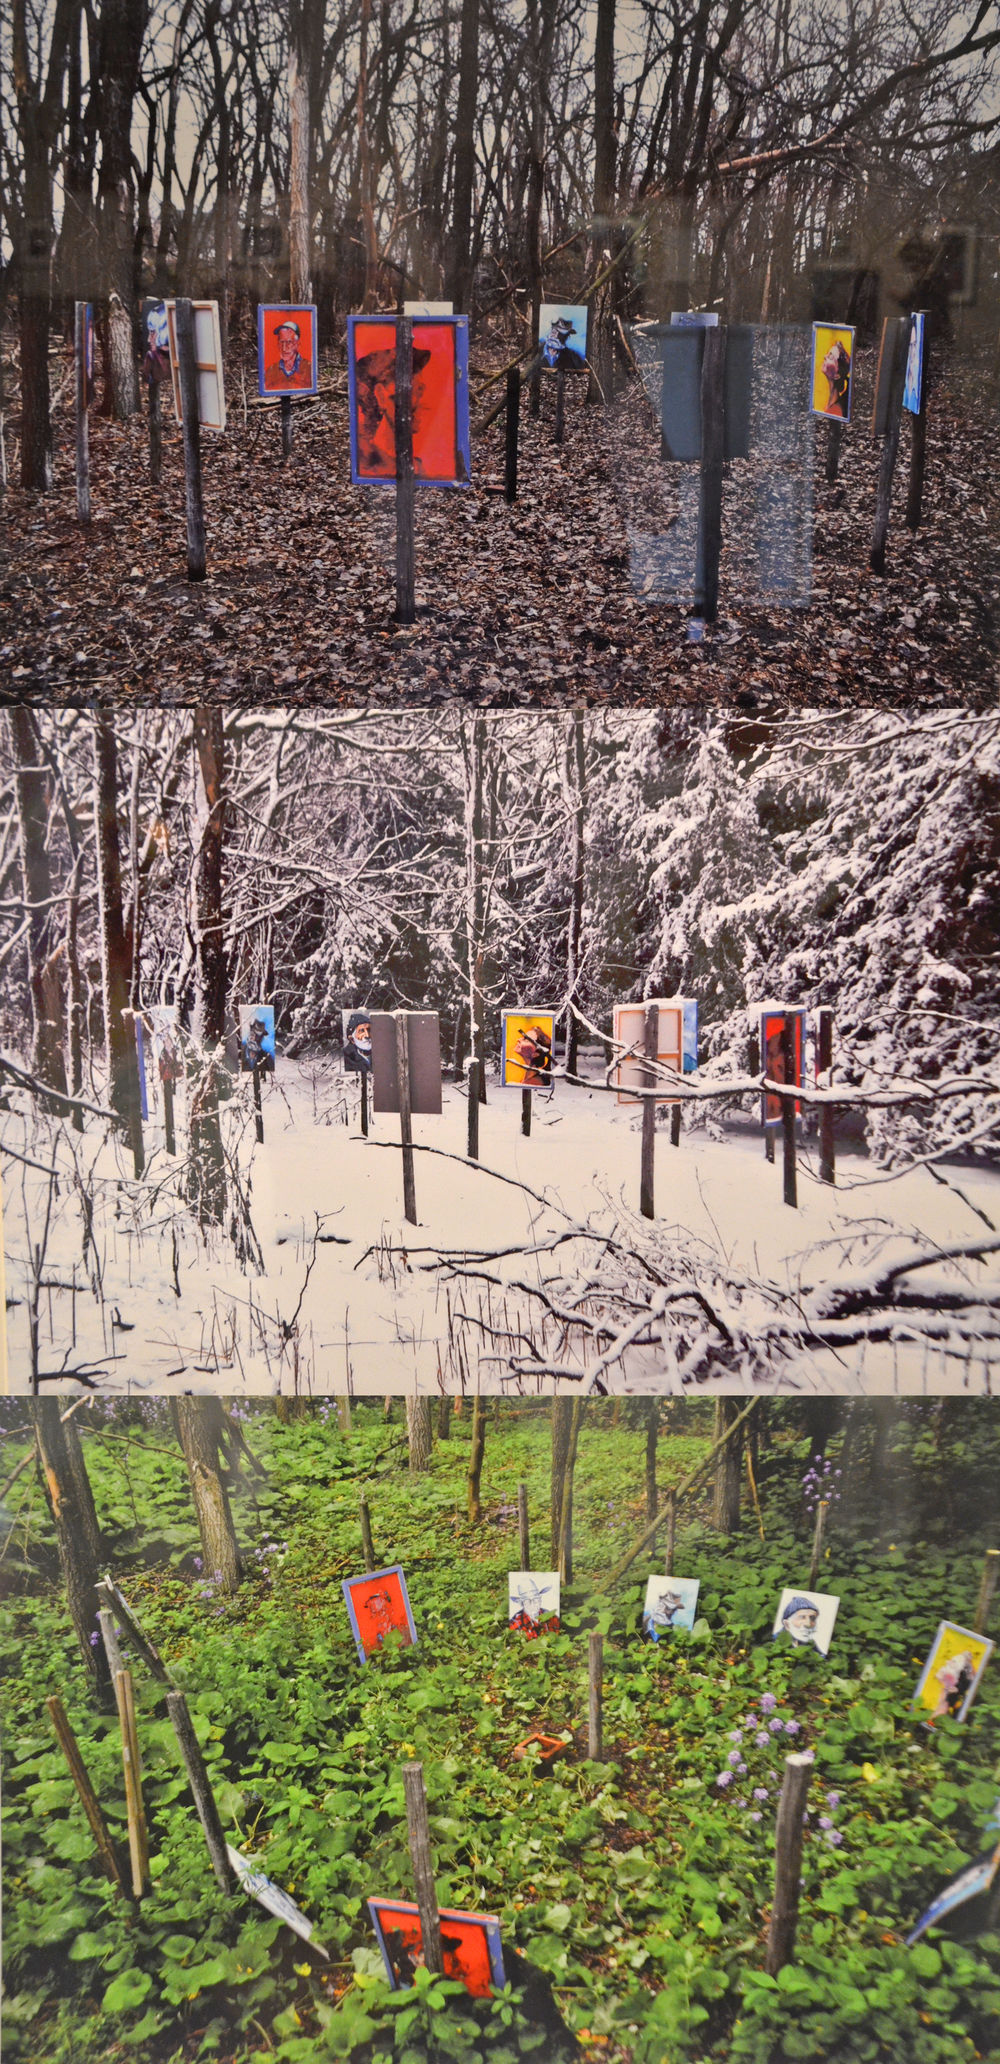 Art exhibit pays tribute to hardships, endurance and understated beauty in rural life